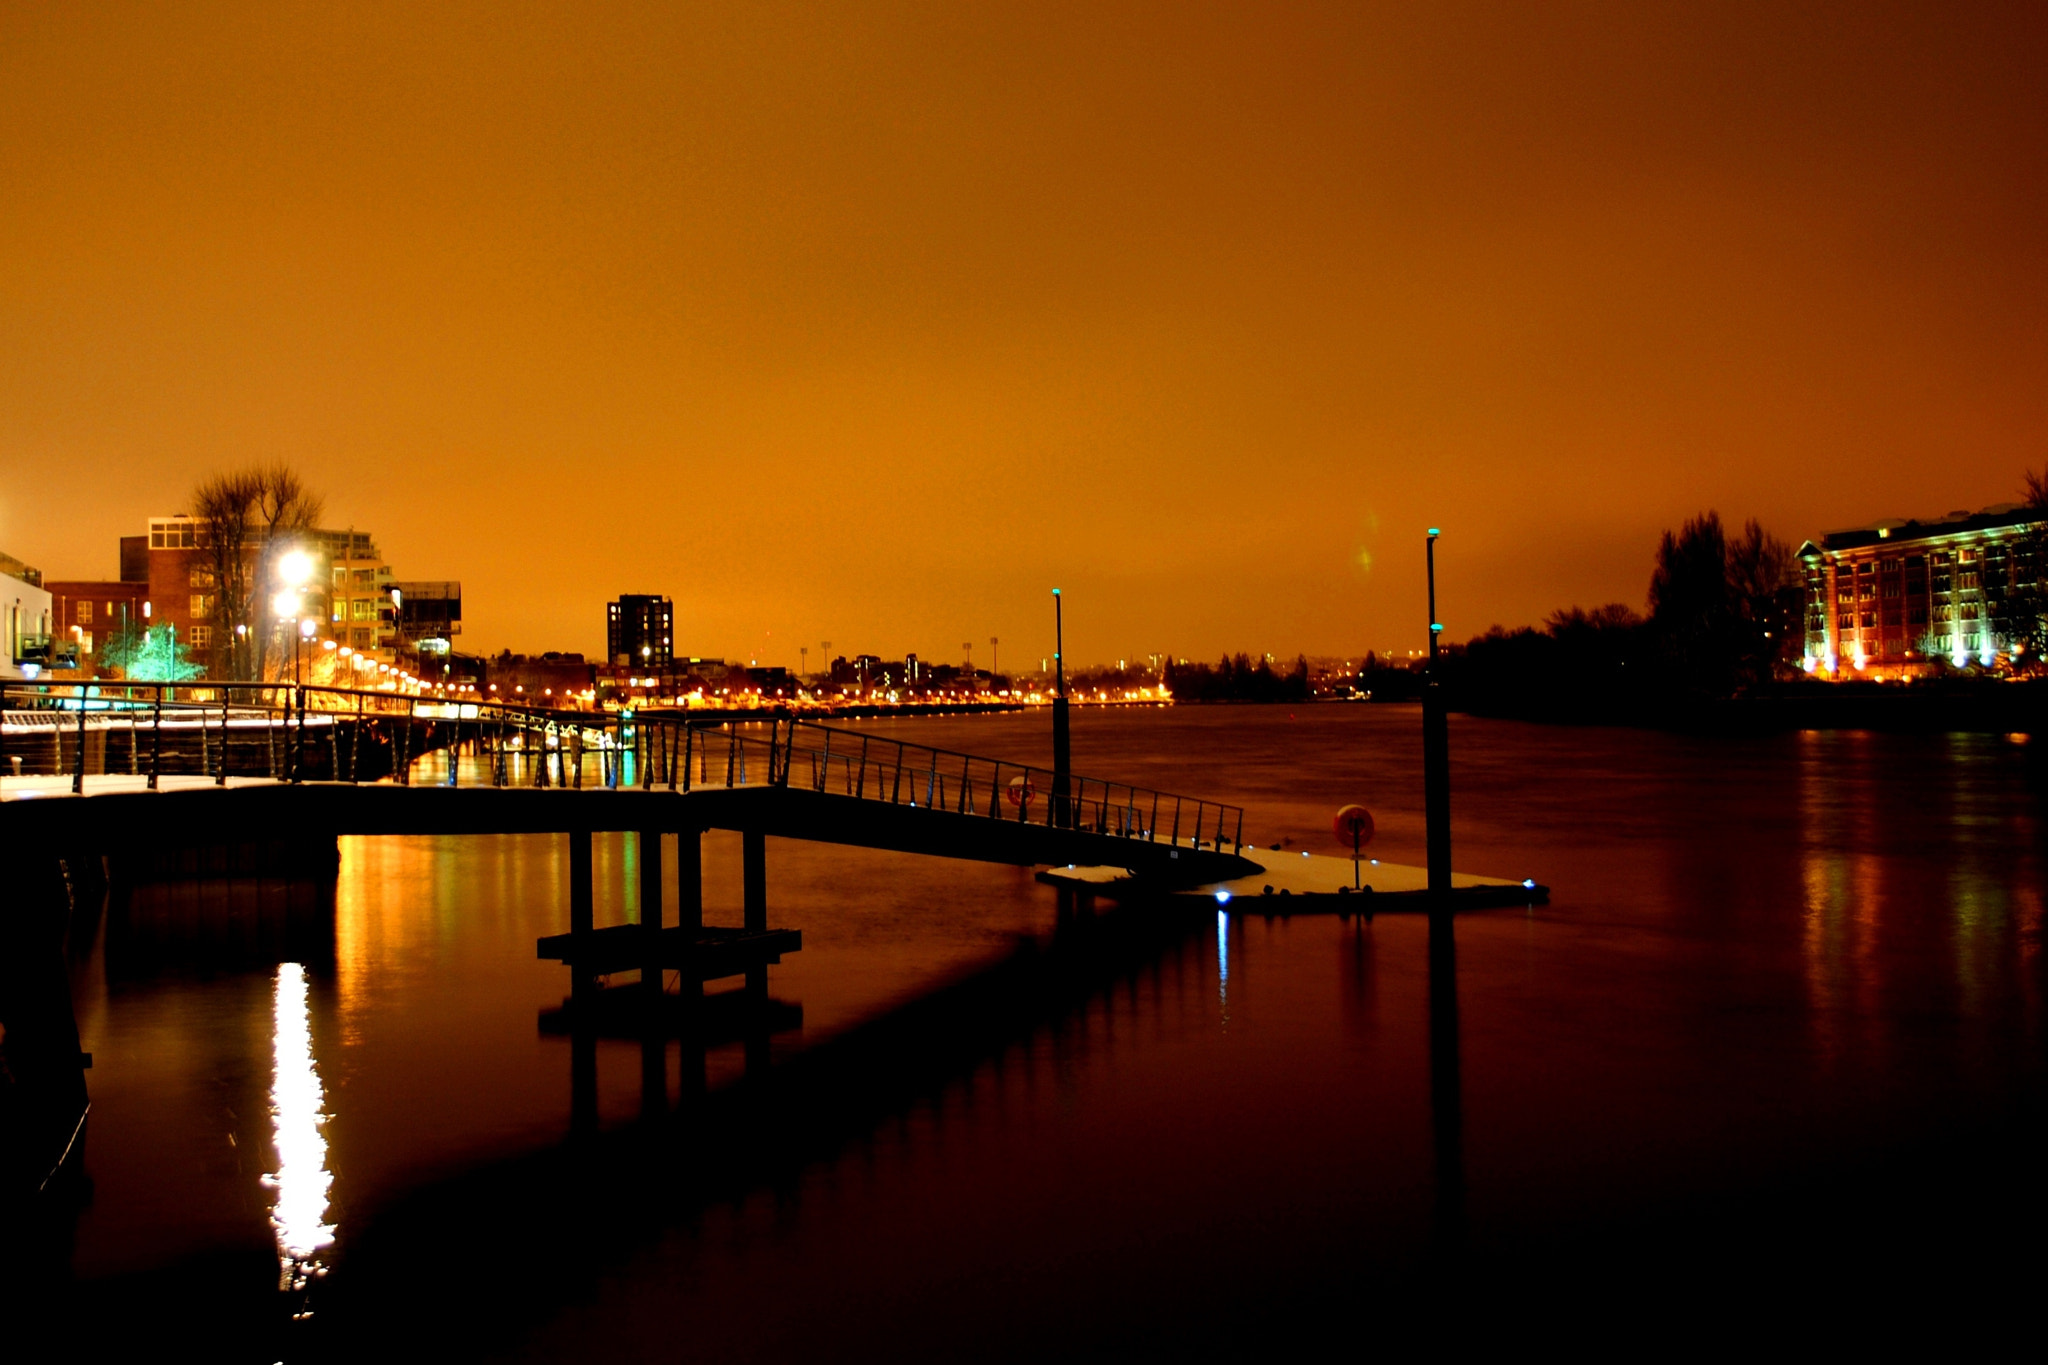 Photograph Lights along the Thames by James Alexander on 500px